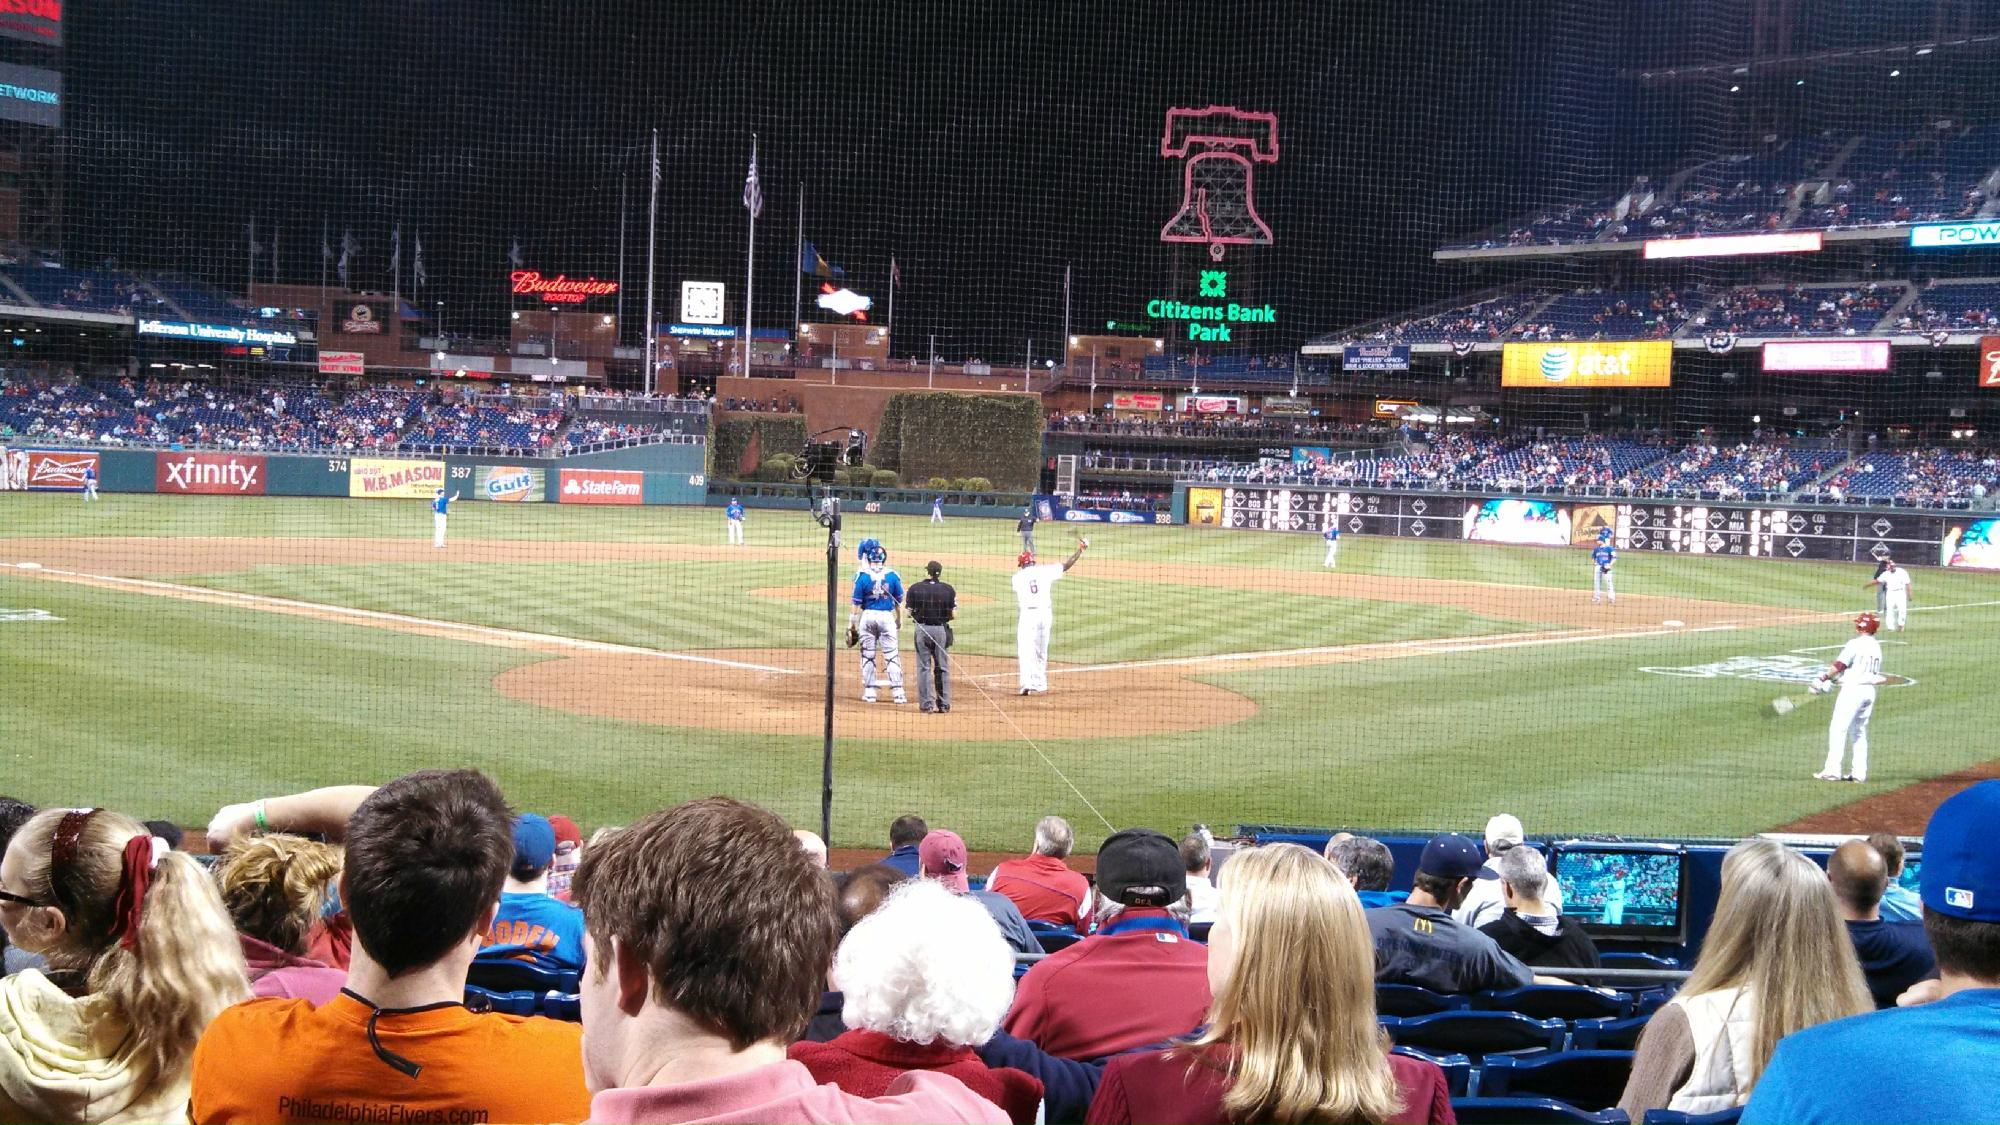 Citizens Bank Park Diamond Club